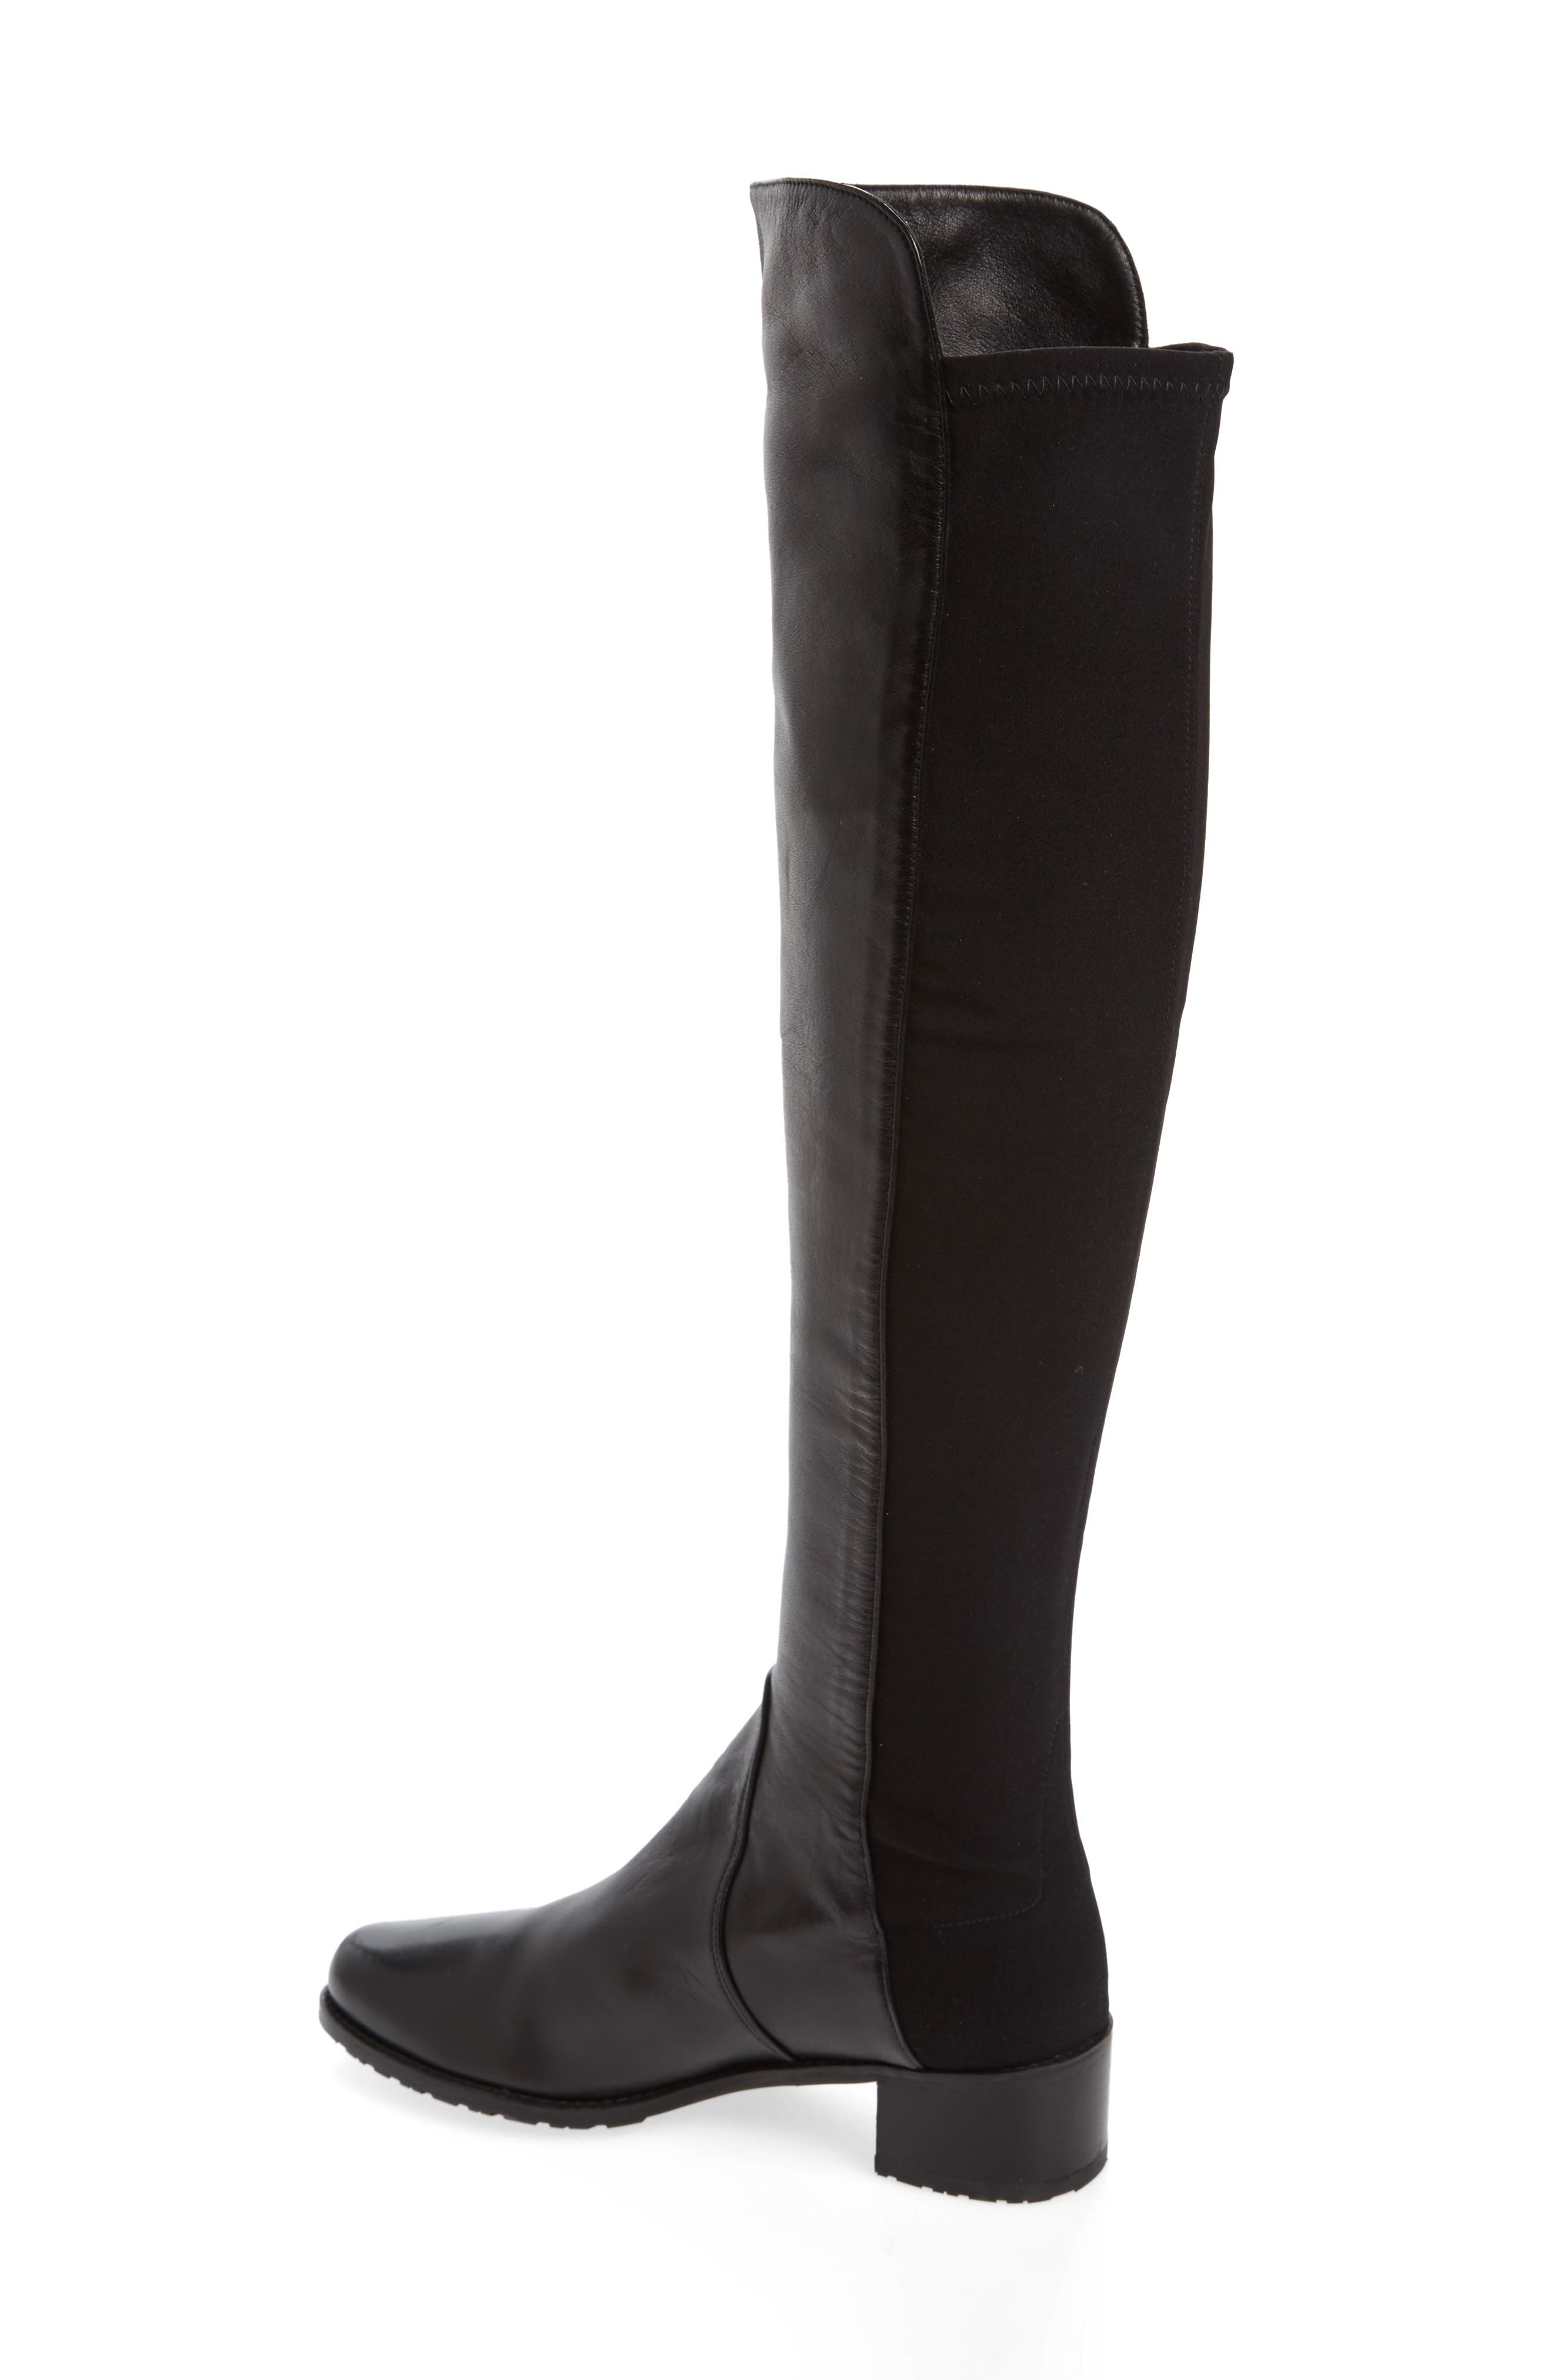 d0fca8f351e Women's Over-The-Knee Boots | Nordstrom